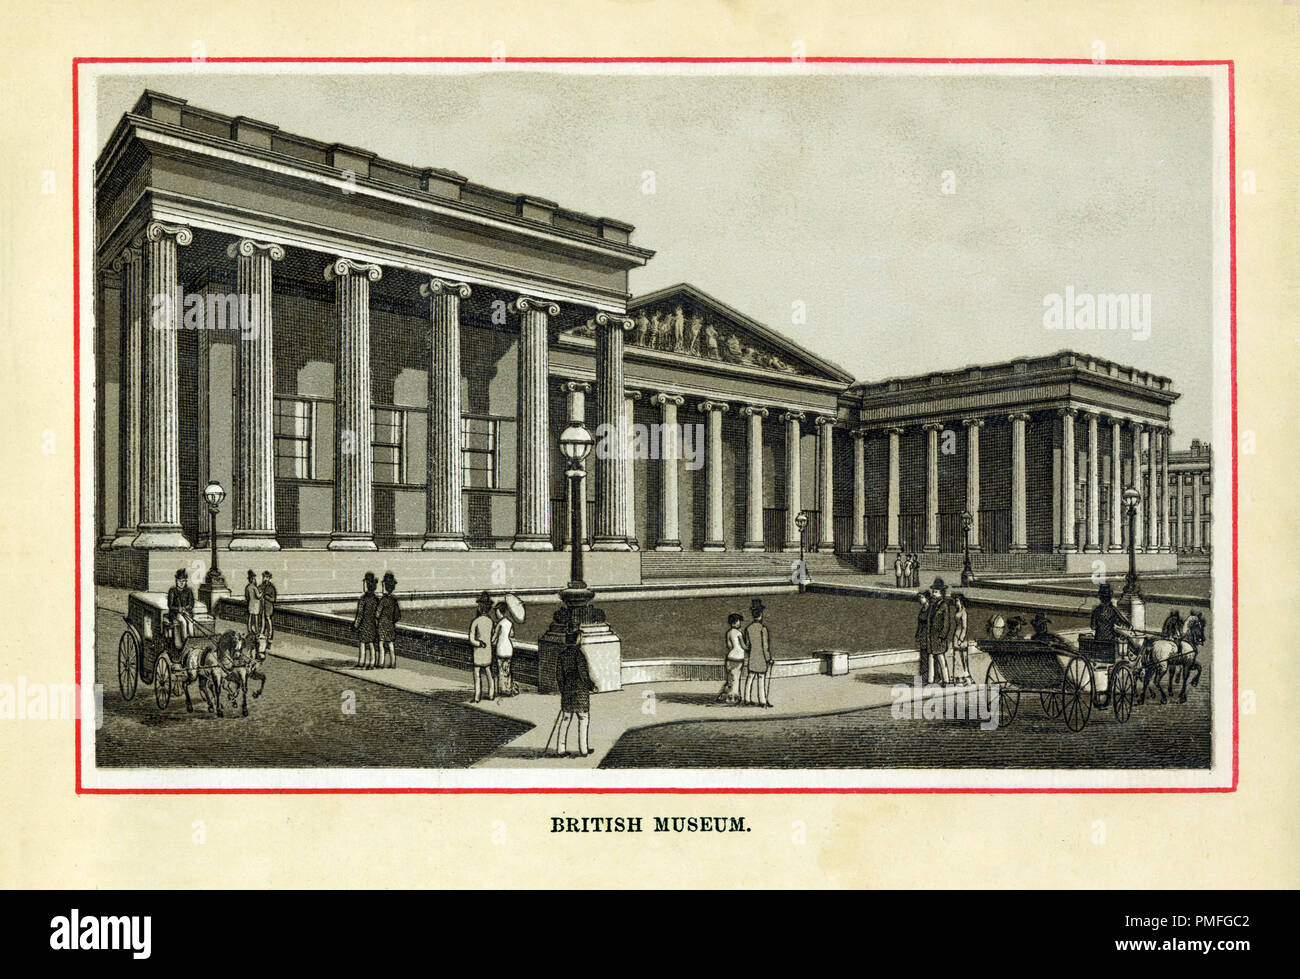 The British Museum, 1880 high quality steel engraving of the first national public museum in the world, established in 1753 on the collections of Hans Sloane, the neo-classical front built to the designs of Robert Smirke opened between 1827 and 1857 - Stock Image